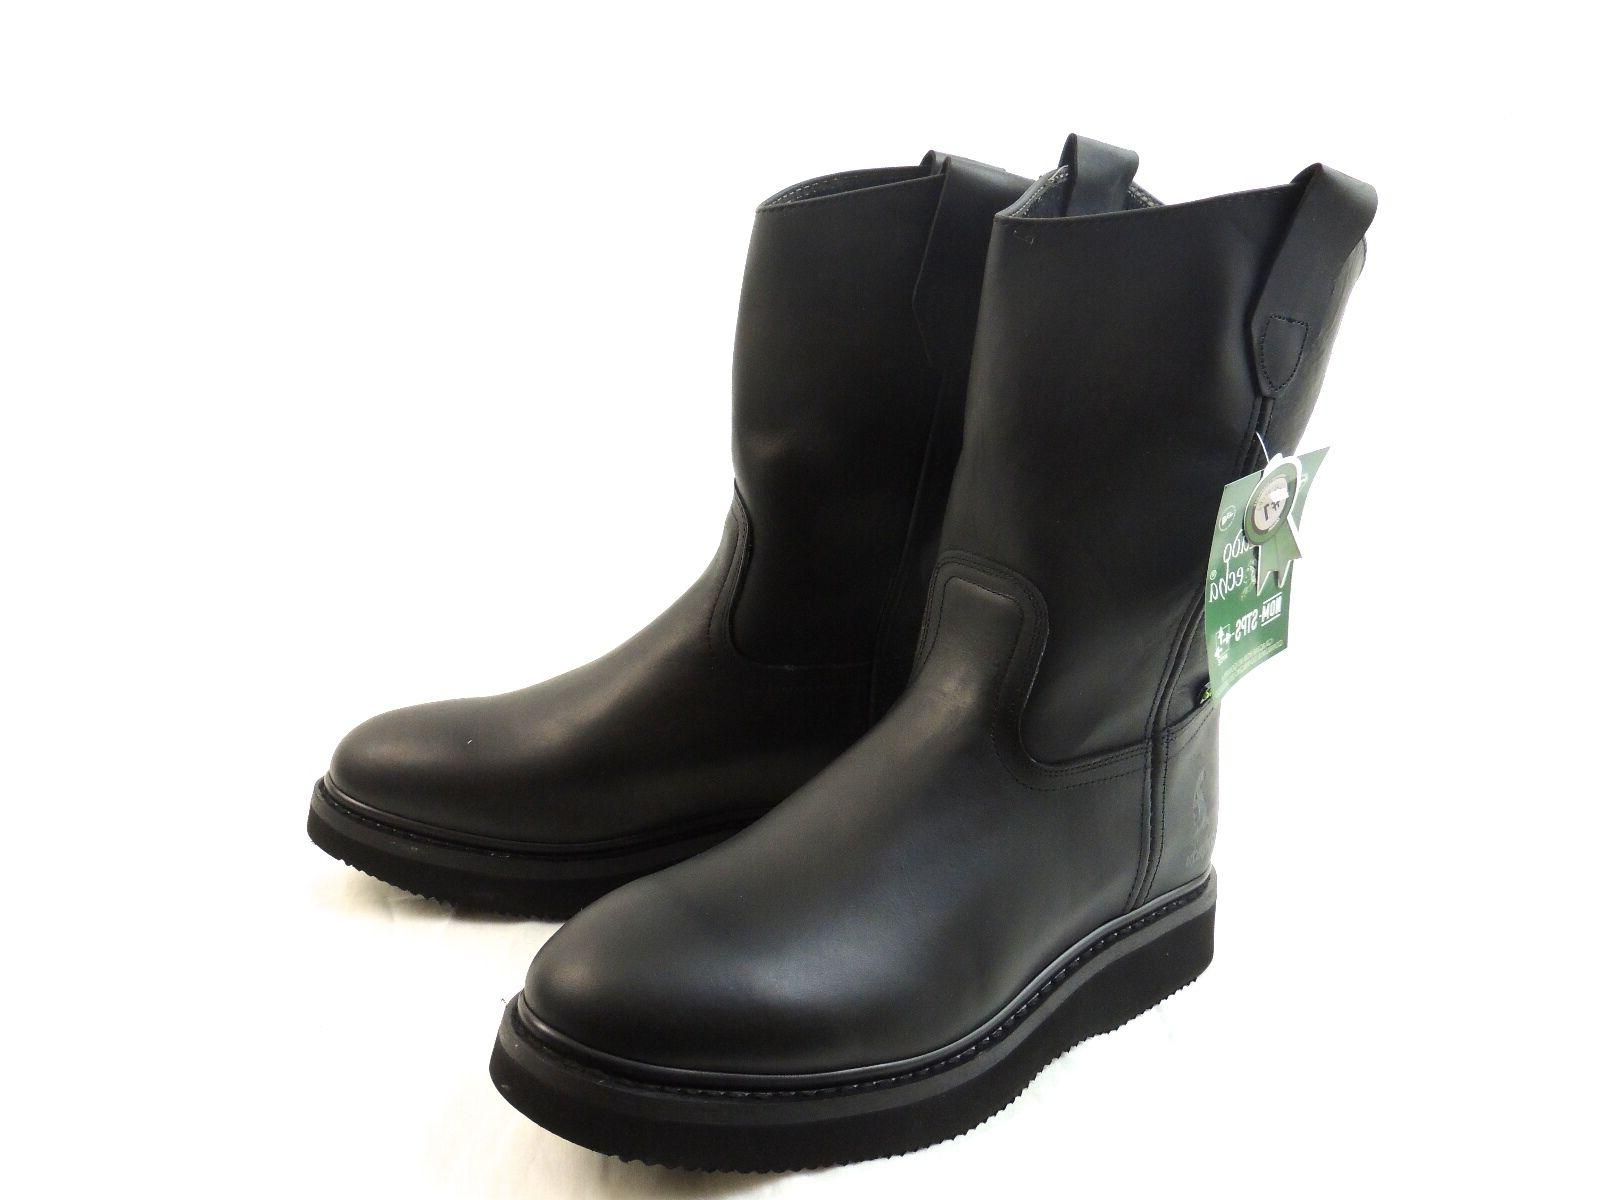 MEN'S WORK LEATHER BLACK BOOTS PULL ON